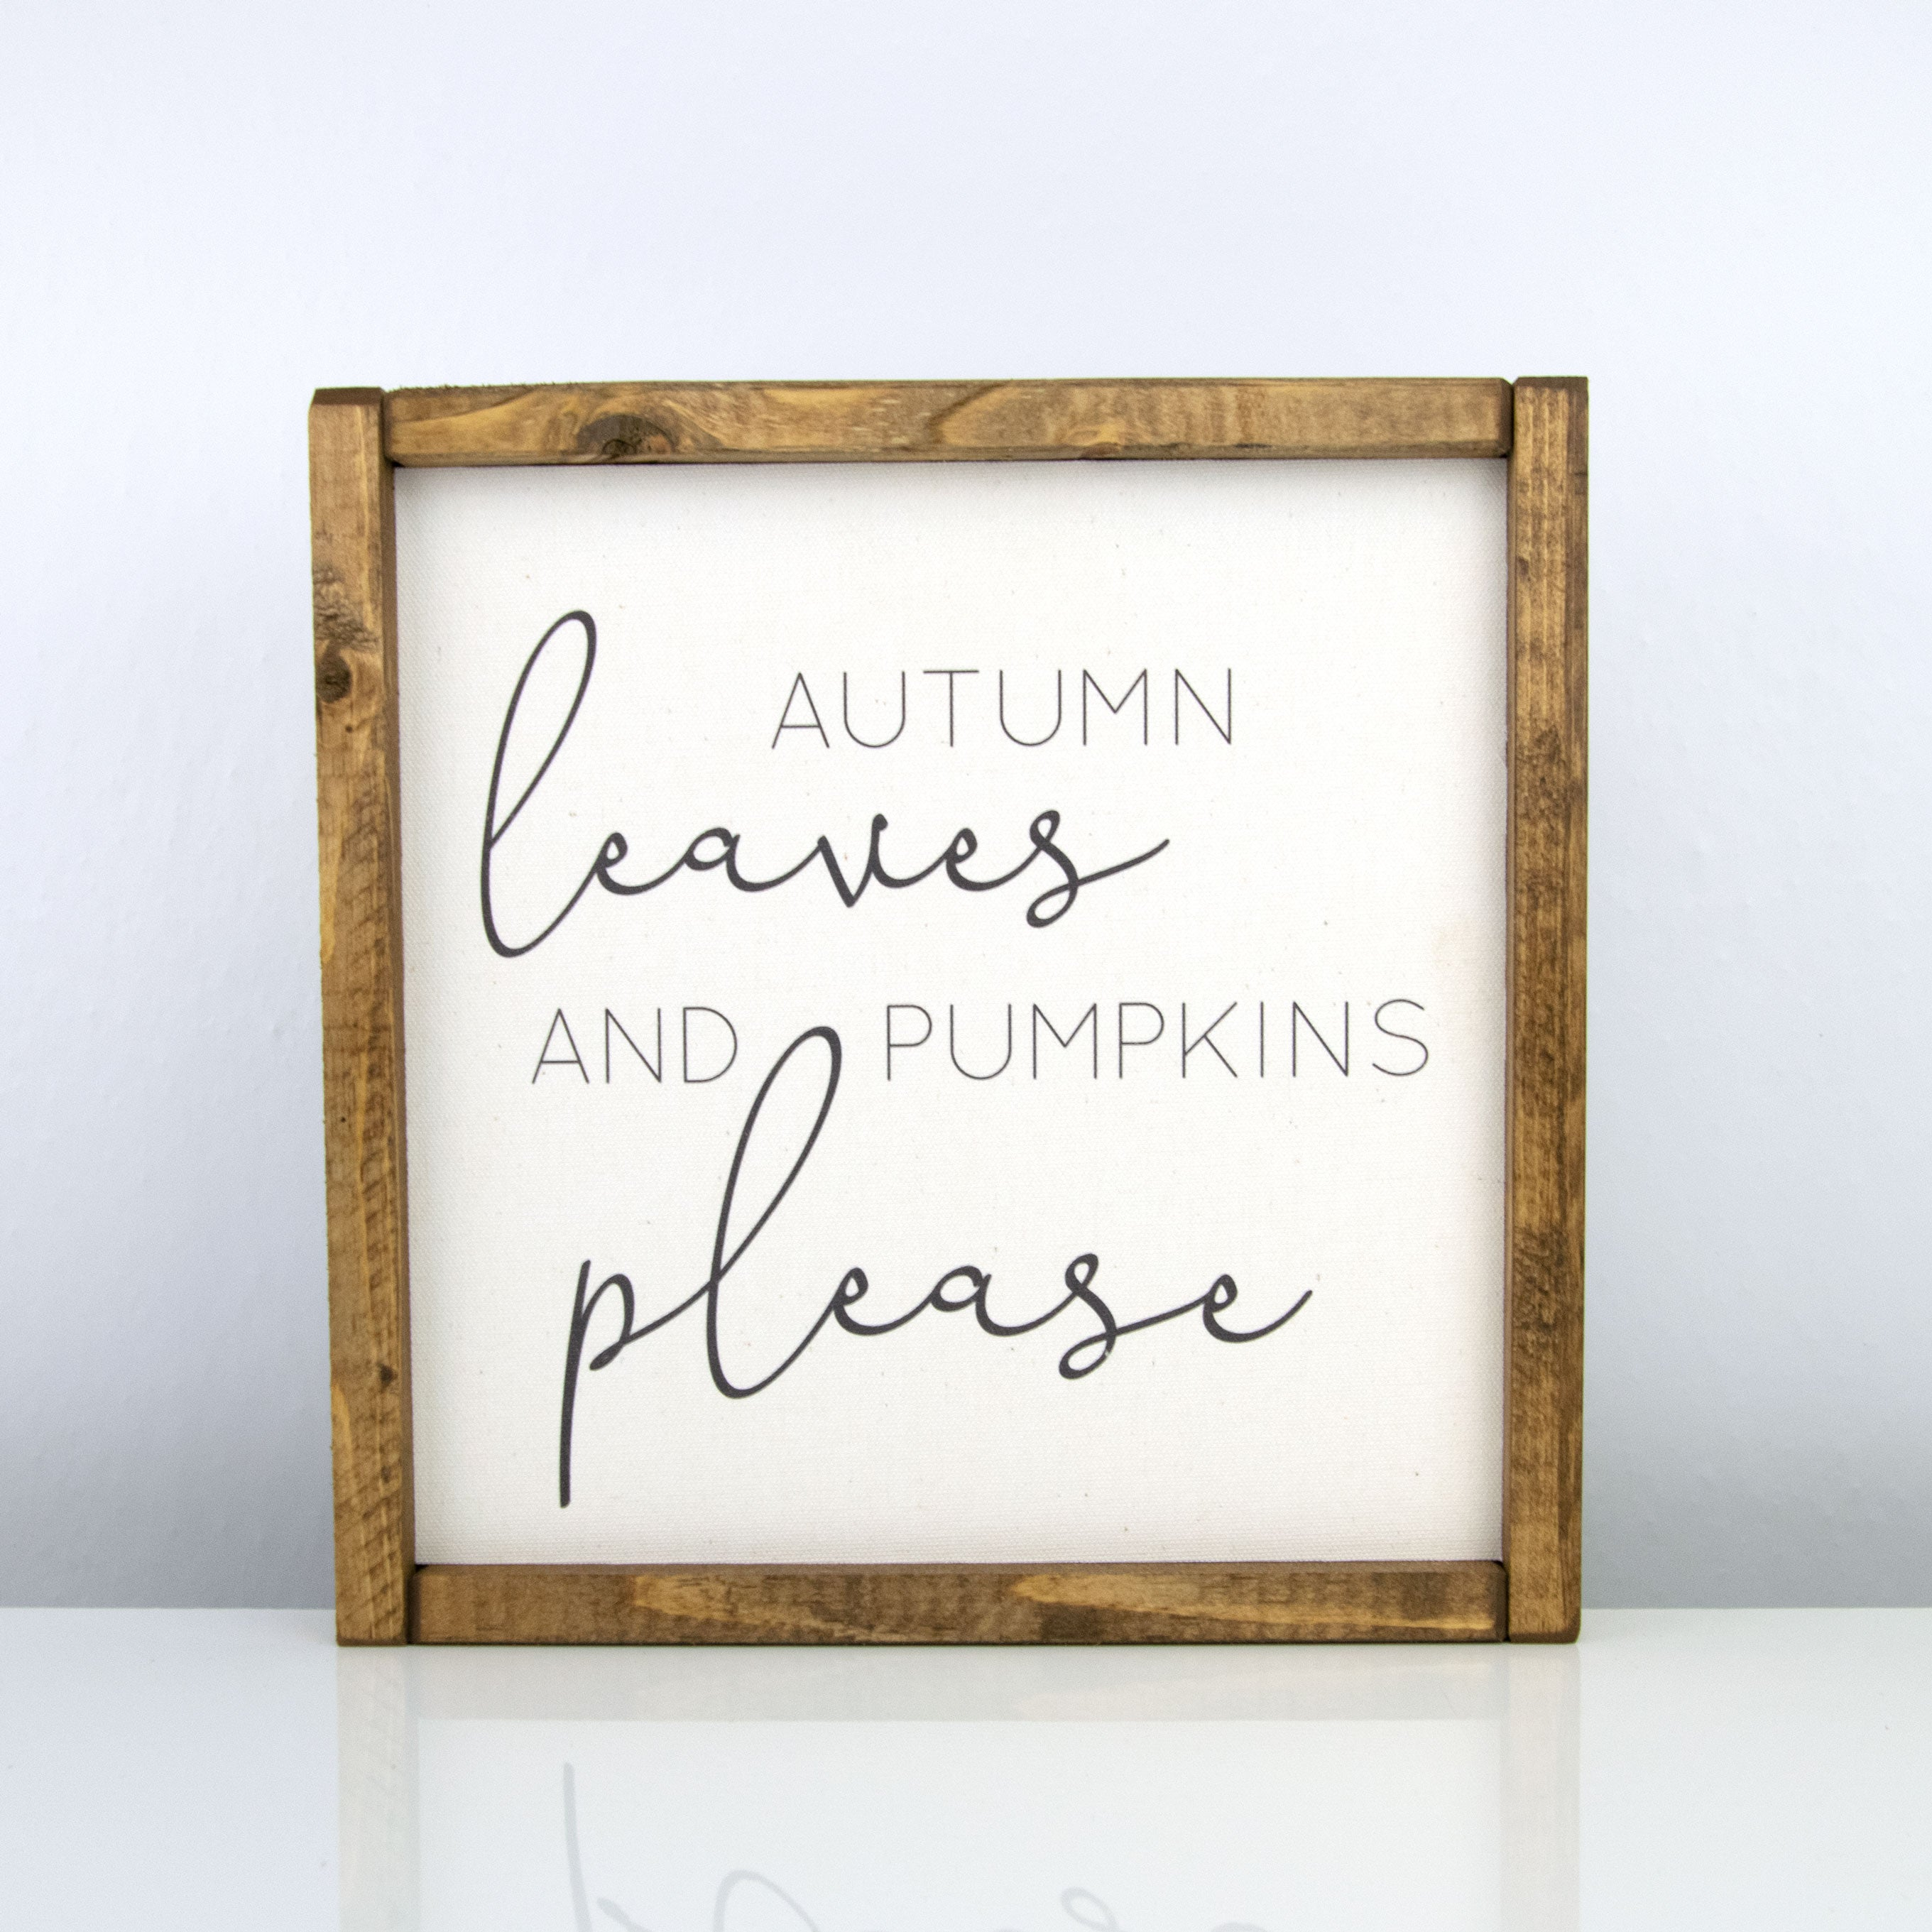 Autumn Leaves and Pumpkins Please | 10 x 10 Classic